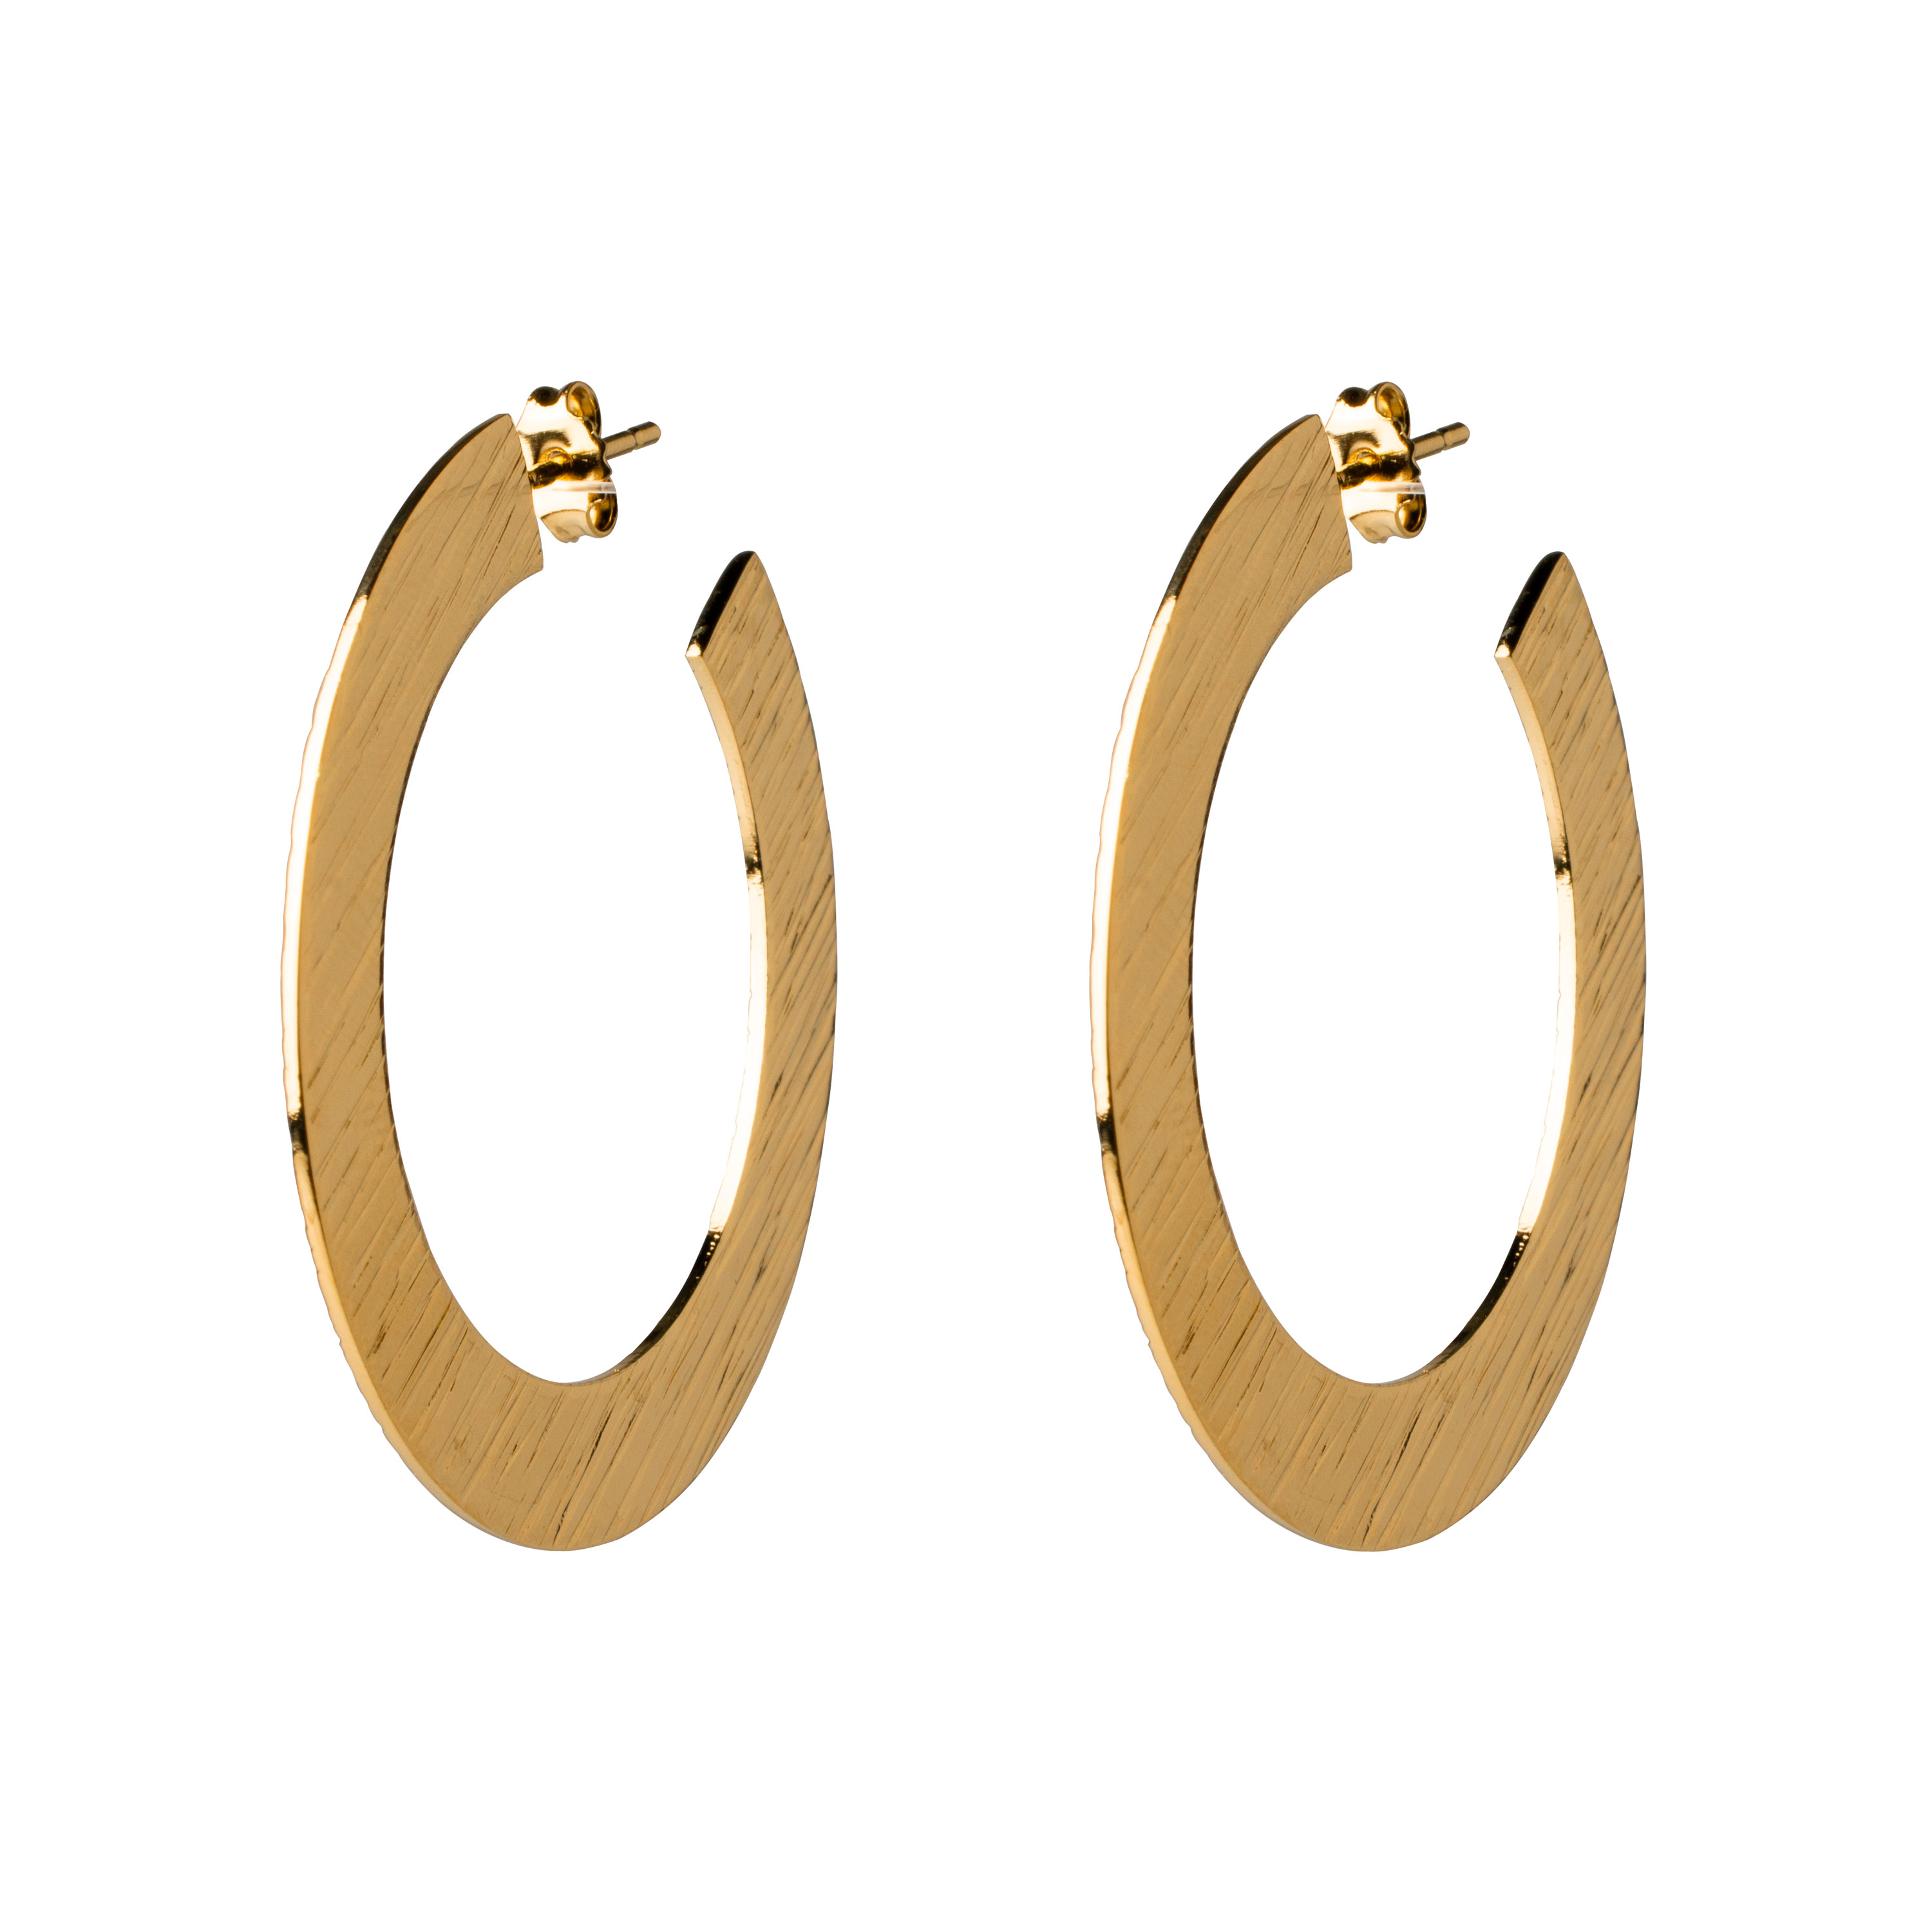 Mia-earrings-Julia-Duran-jewelry